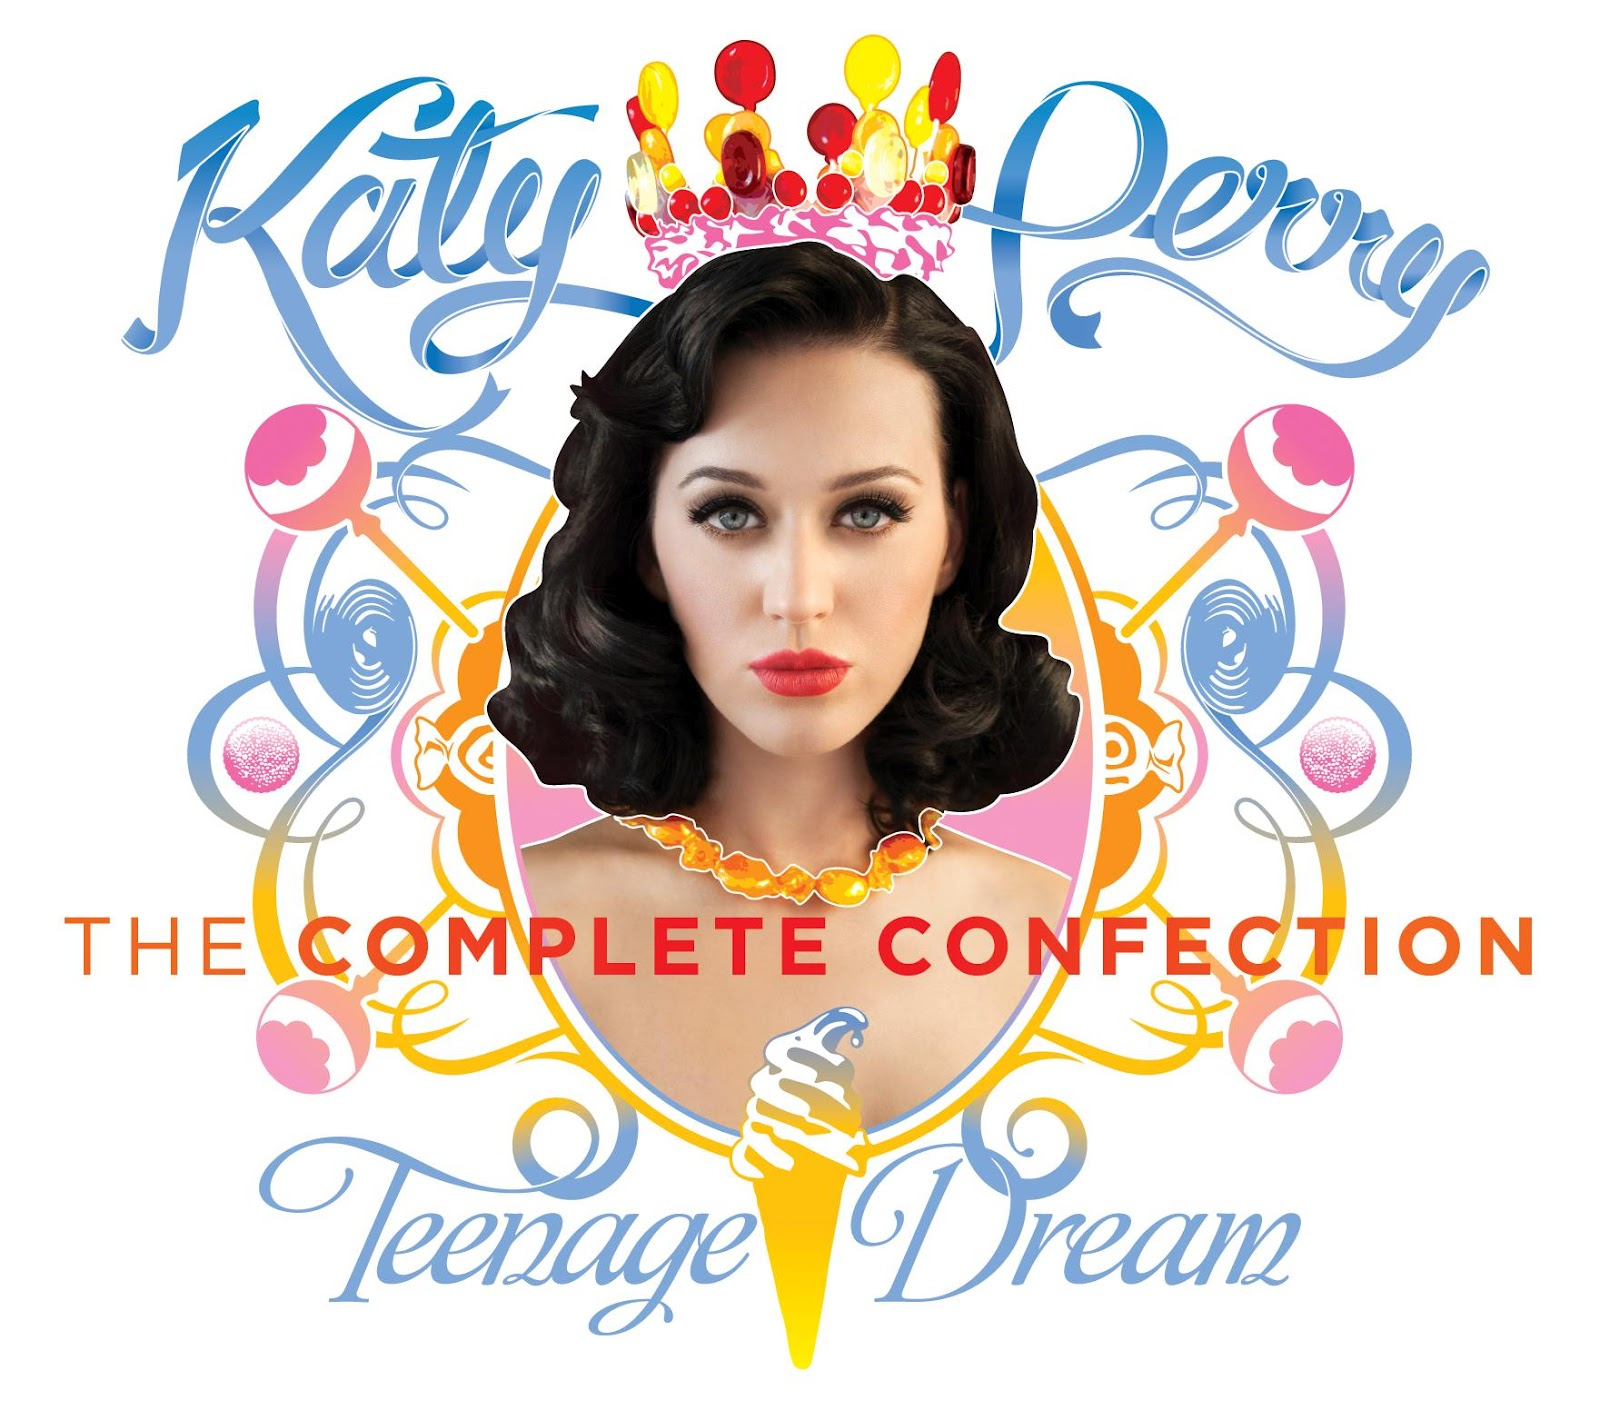 Katy Perry - Teenage Dream. The Complete Confection